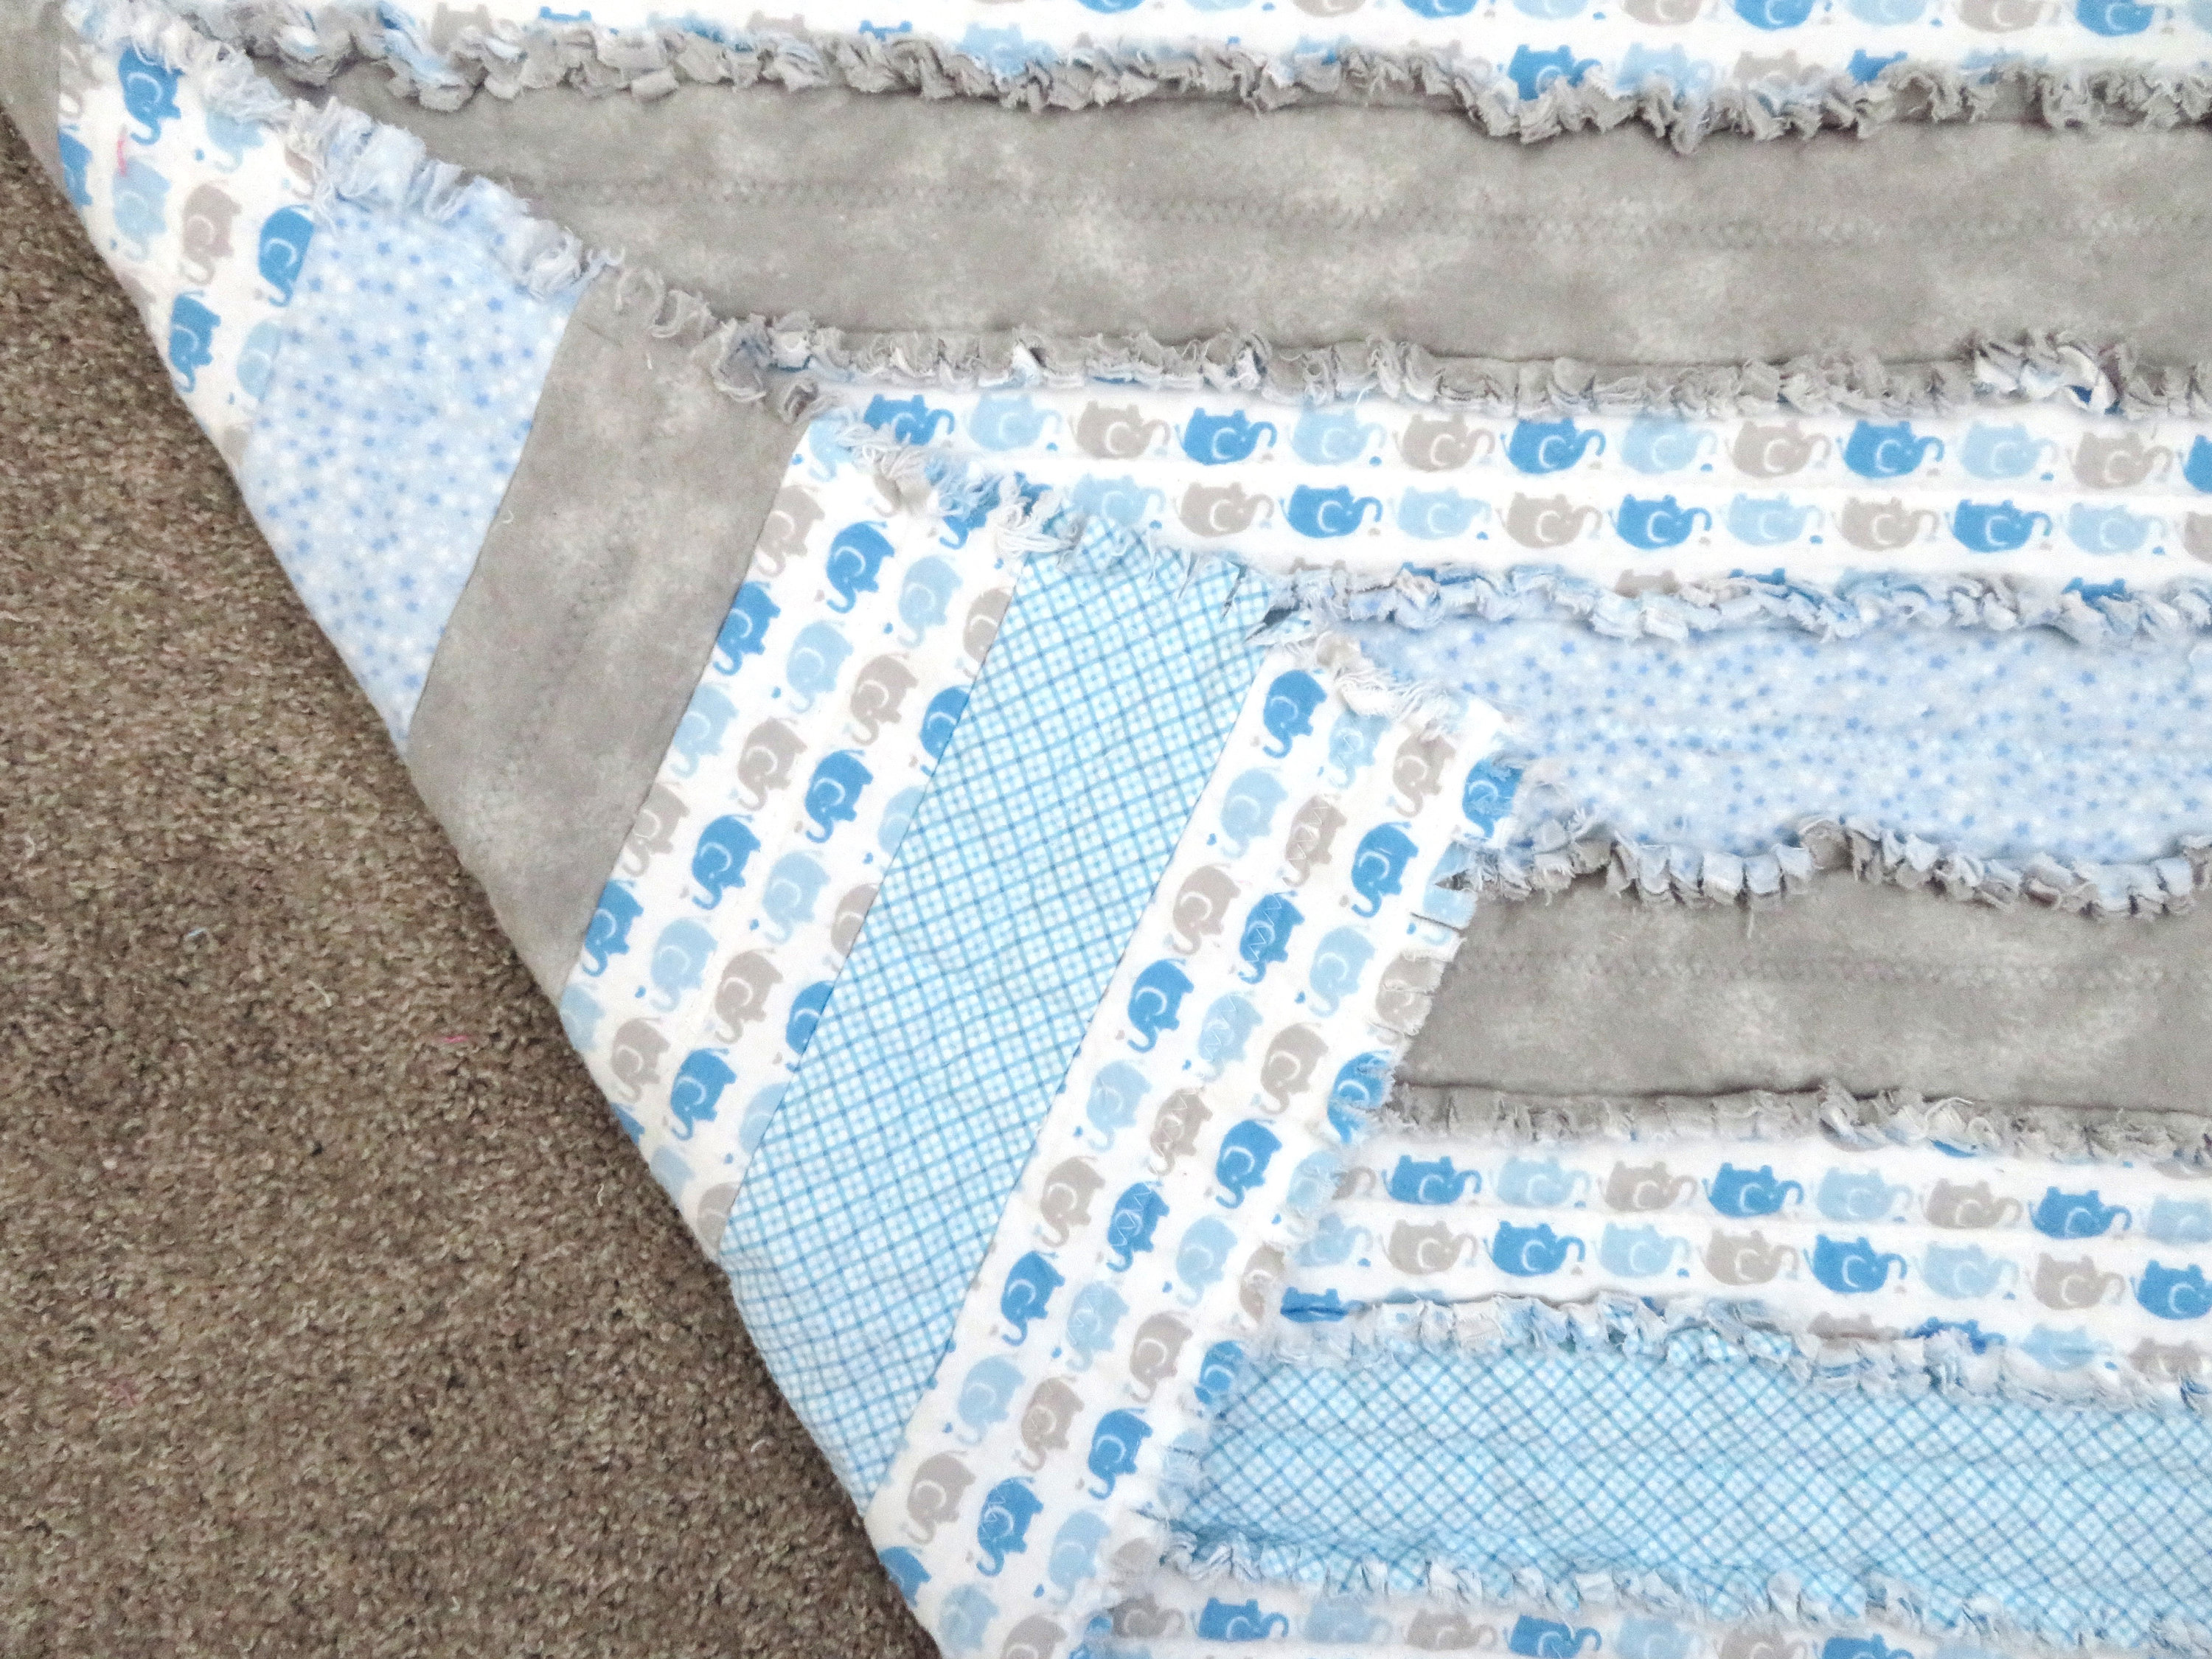 Elephants Nursery Blanket in blue and grey - elephants on parade, blue gray striped rag quilt, elephant nursery blanket, stroller blanket